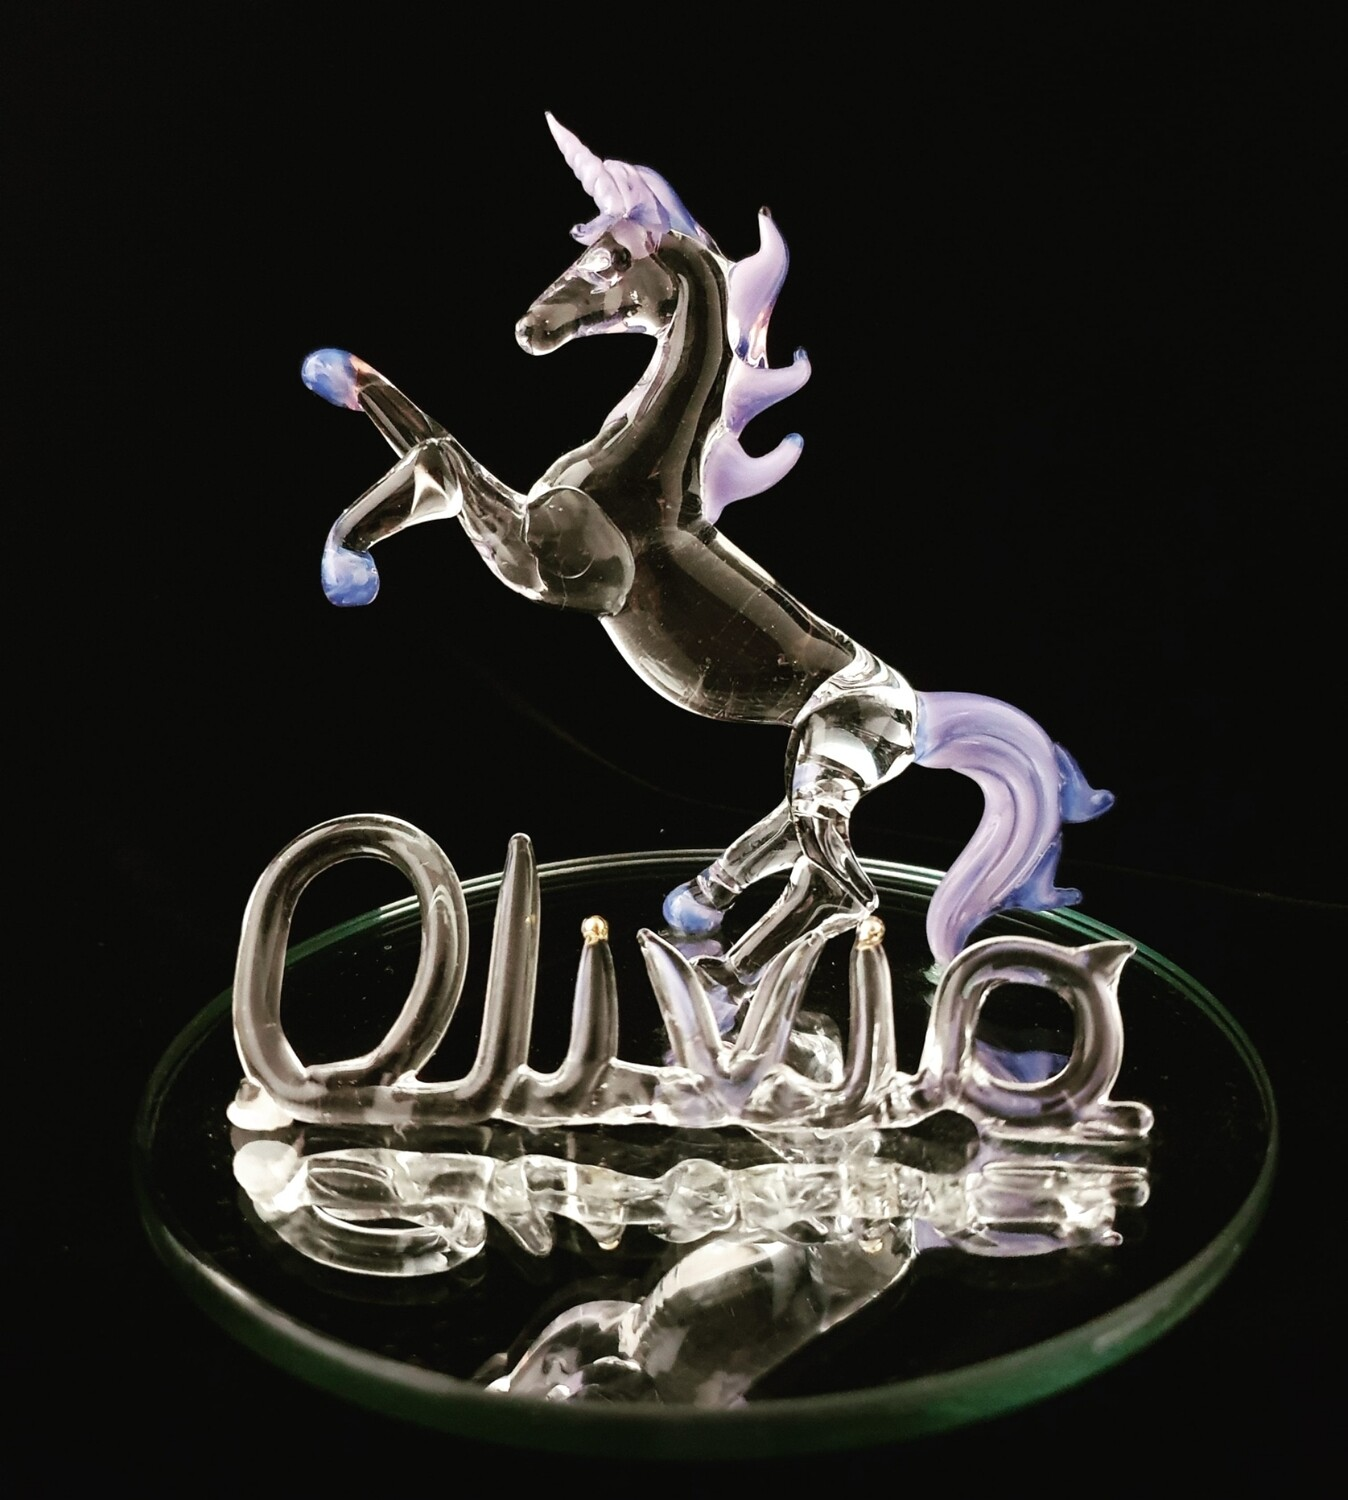 Small Rearing Unicorn with Name on Mirror